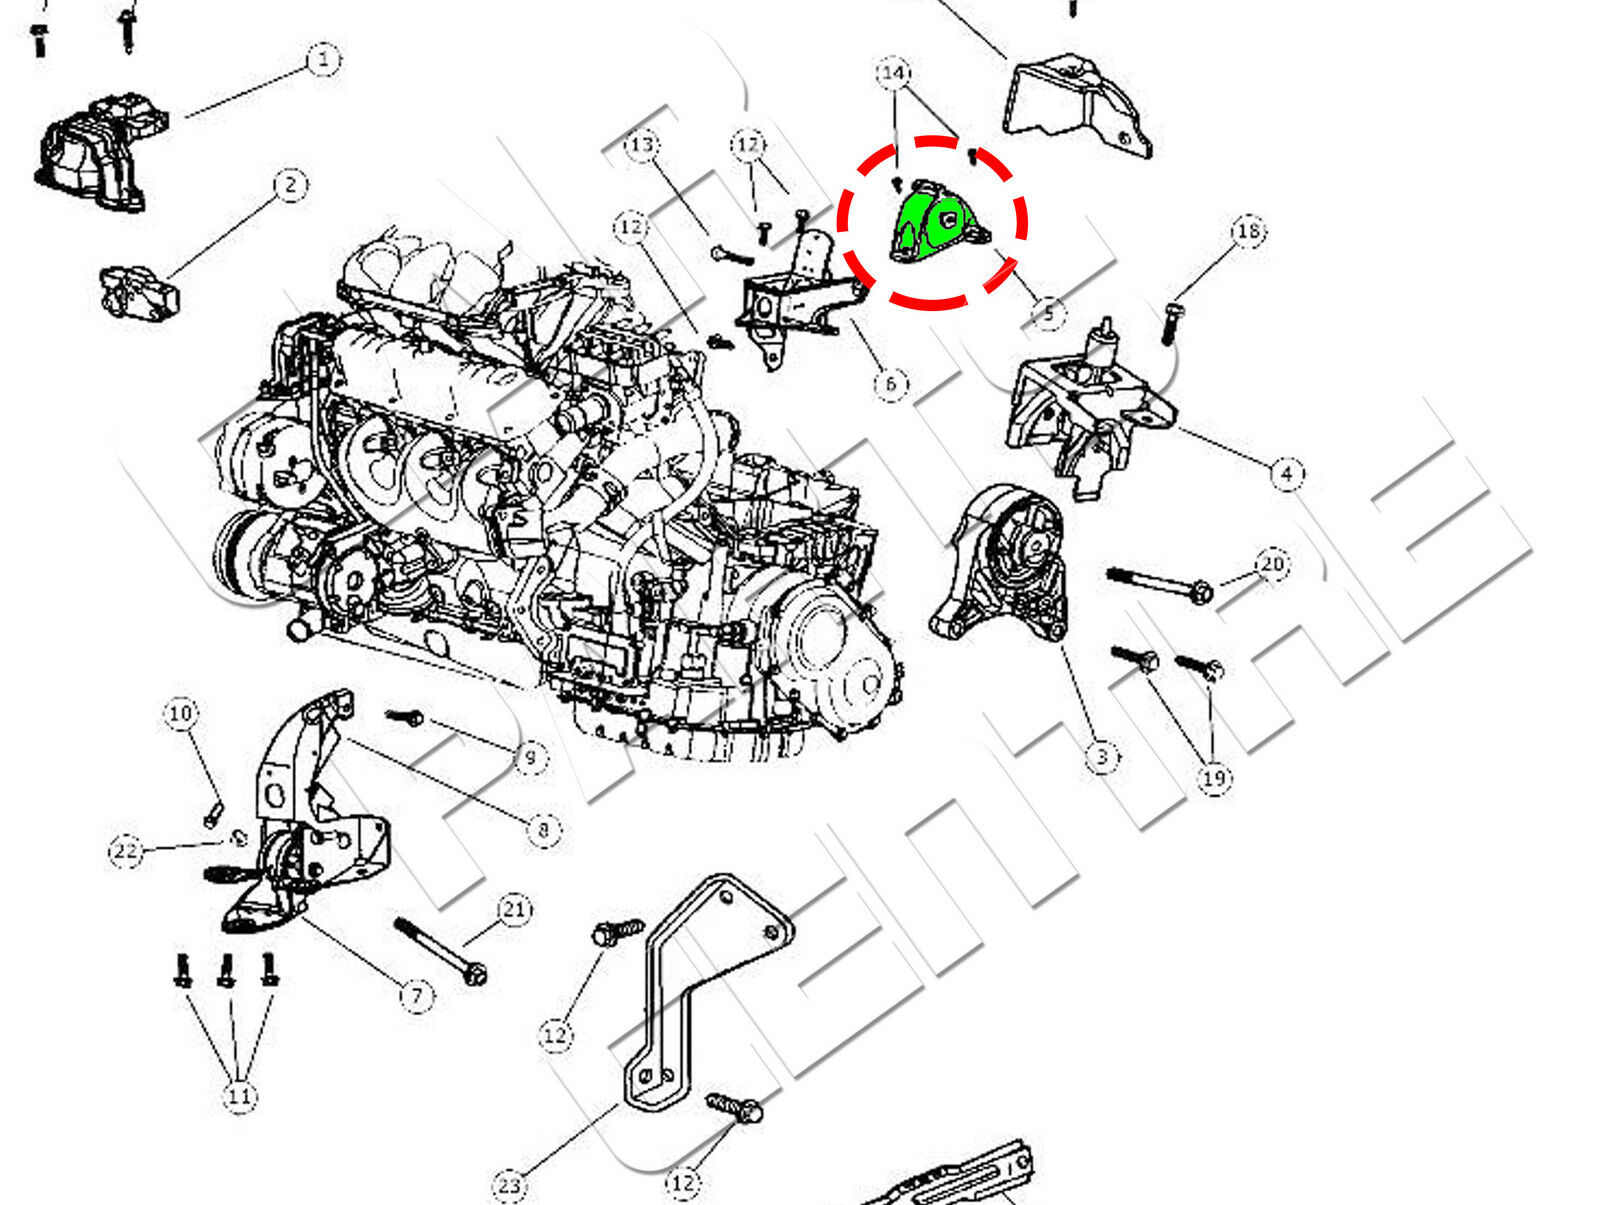 Chrysler 3 V6 Engine Diagram Great Installation Of Wiring 2001 Plymouth Voyager Fuse Simple Rh 42 Mara Cujas De Pictures An